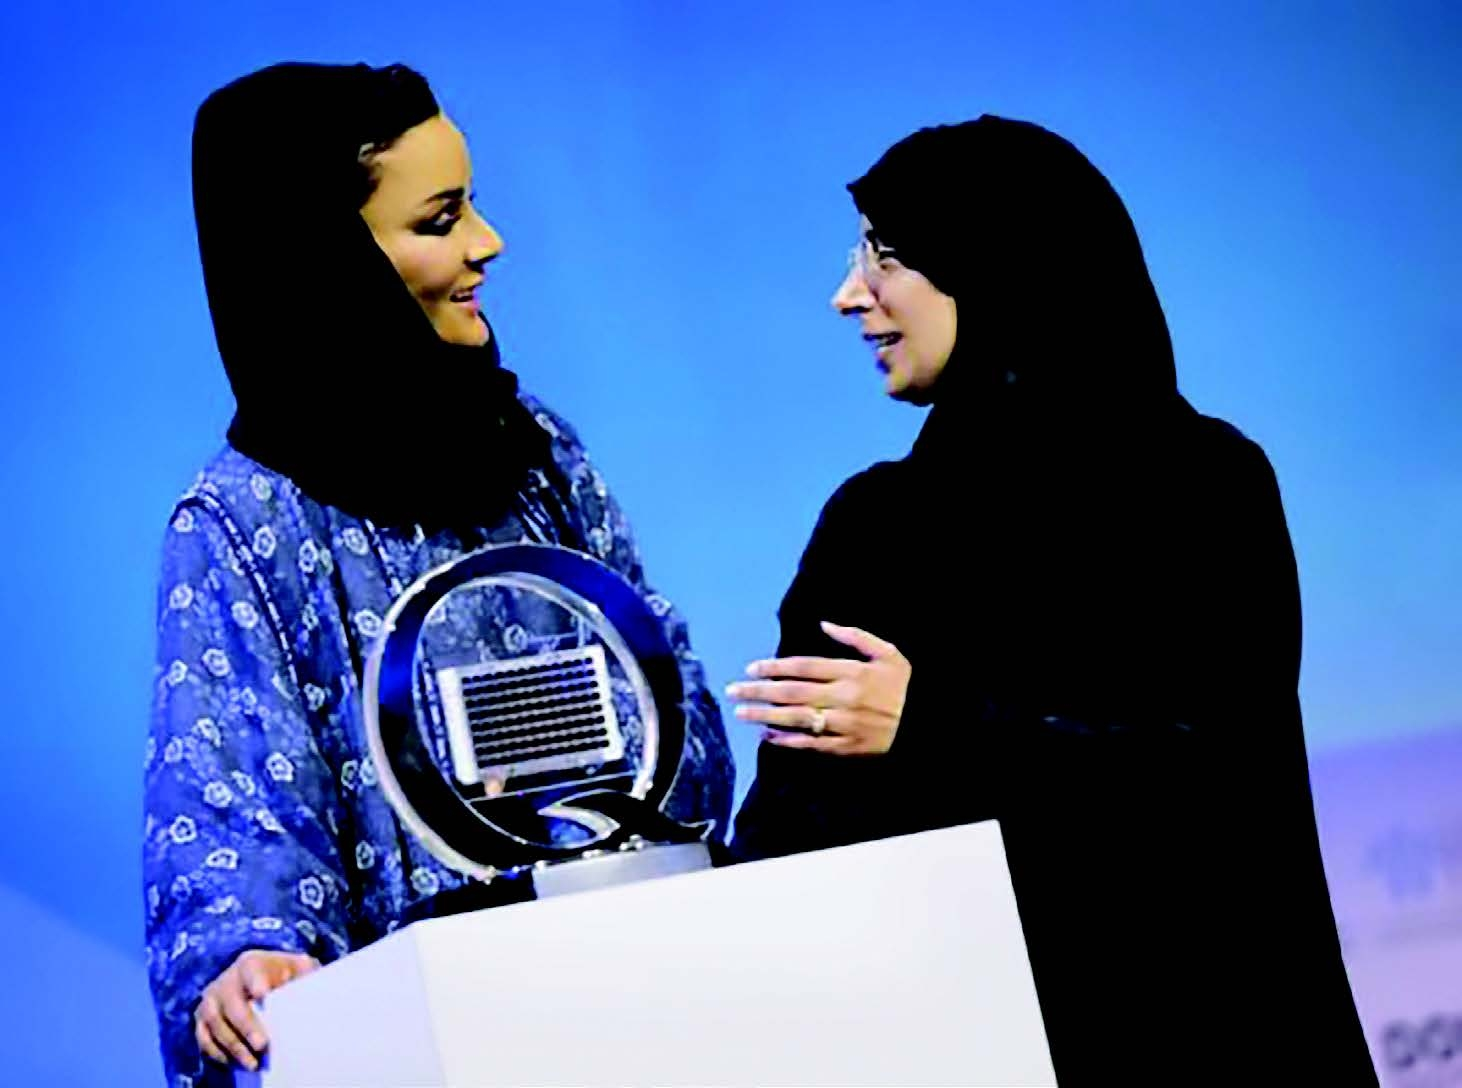 two women at a podium